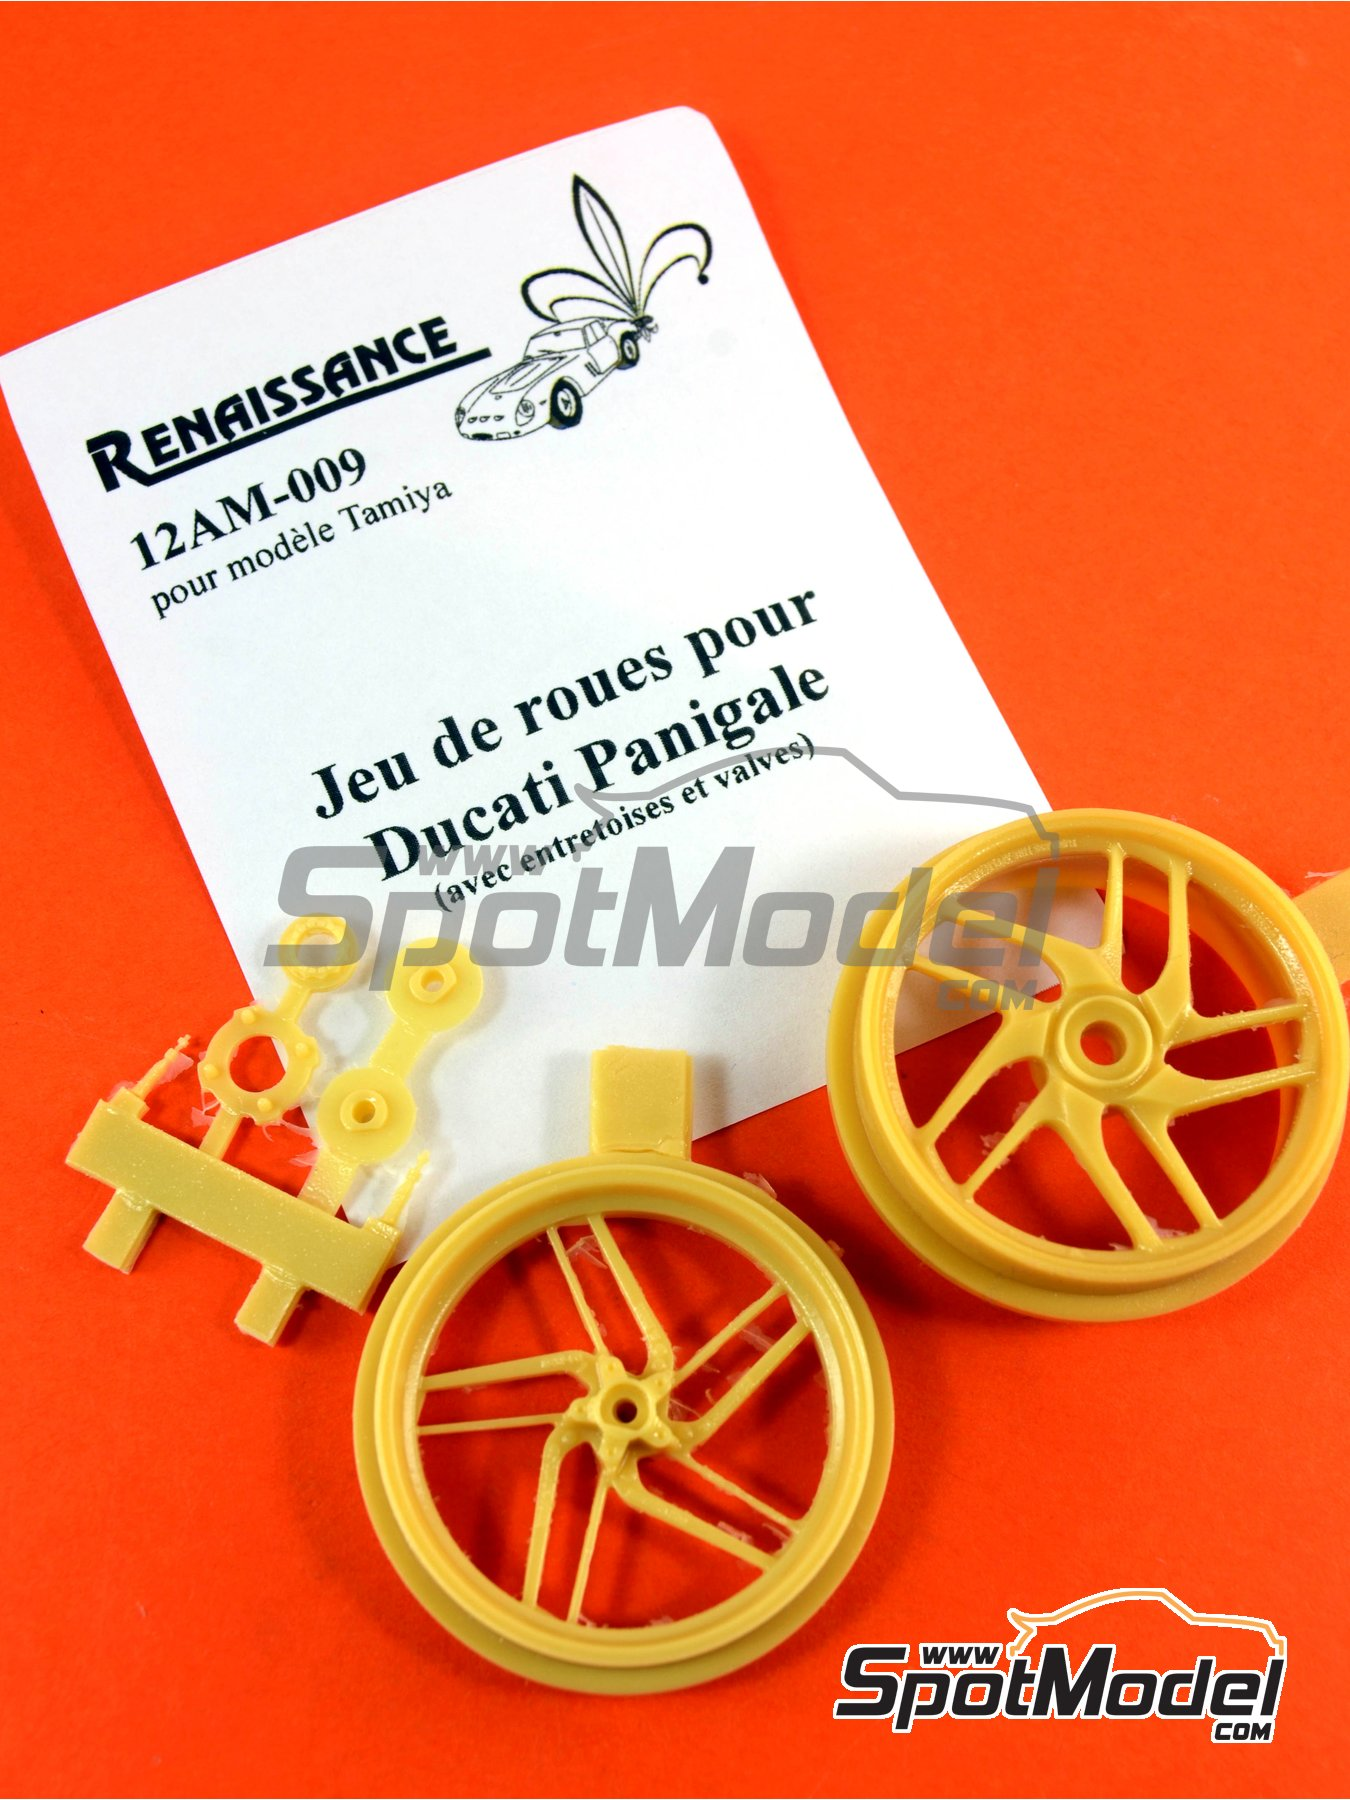 Ducati 1199 Panigale S | Rims in 1/12 scale manufactured by Renaissance Models (ref.12AM-009) image